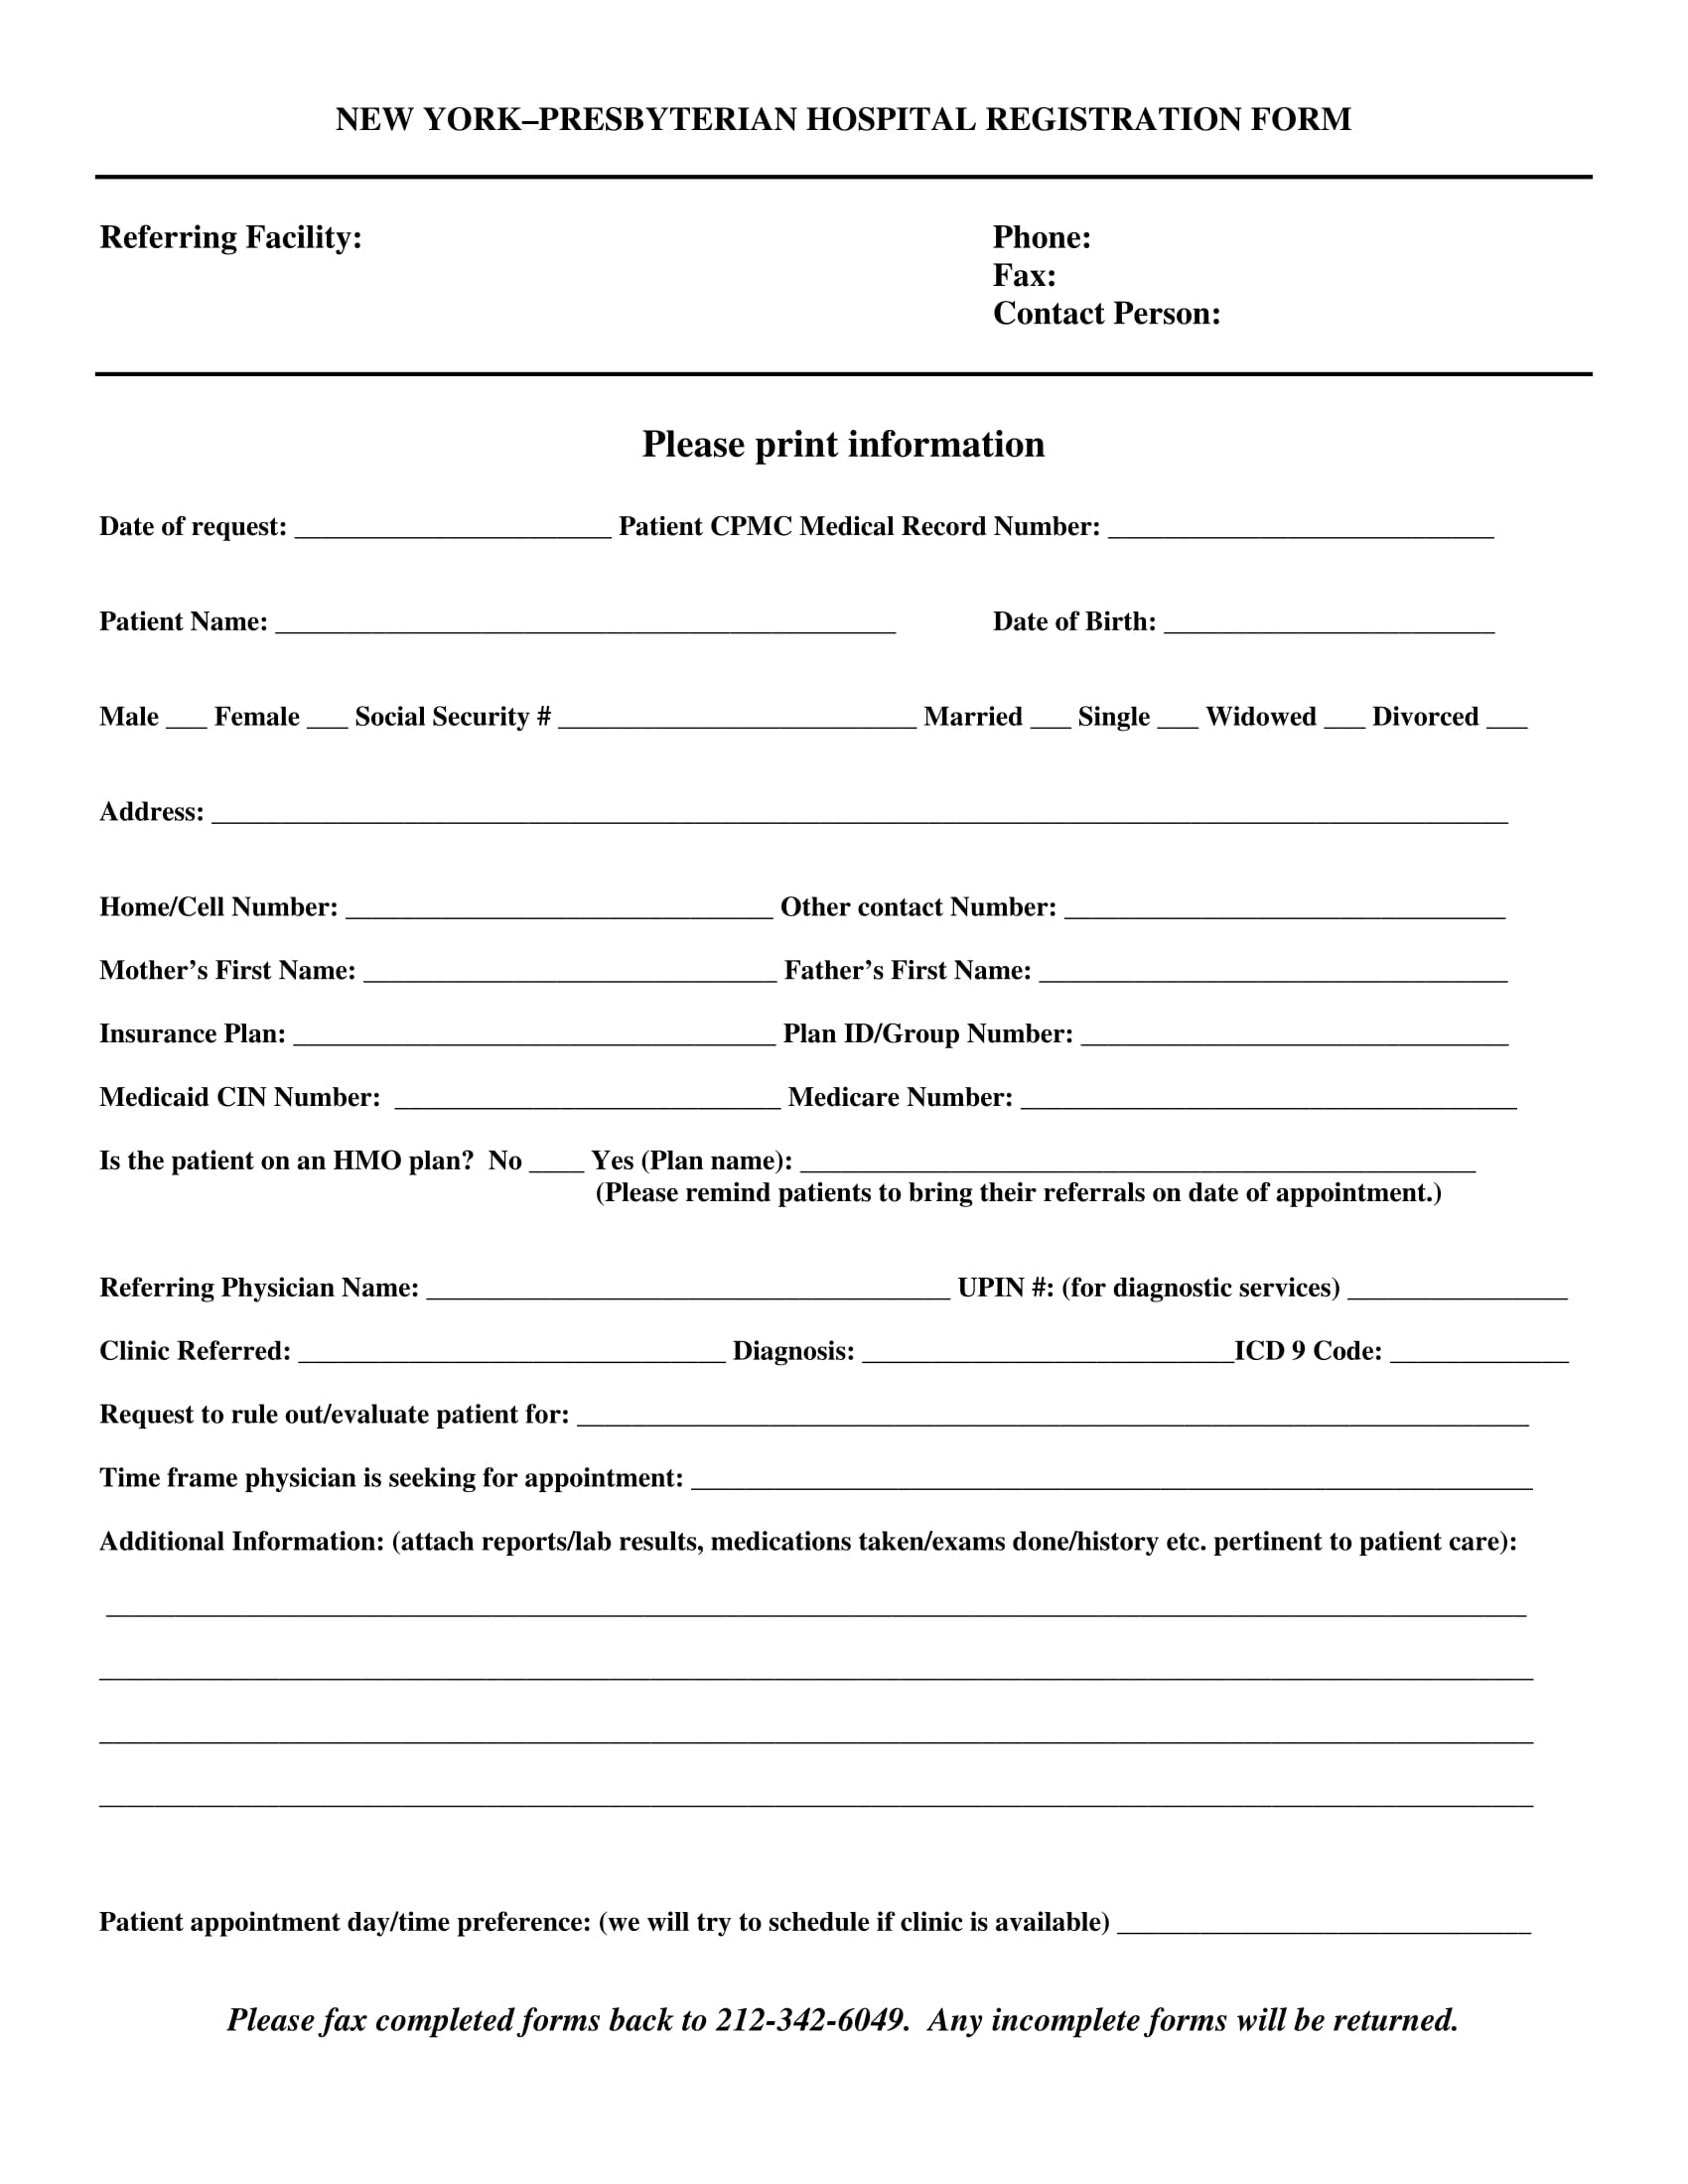 church hospital registration form 1